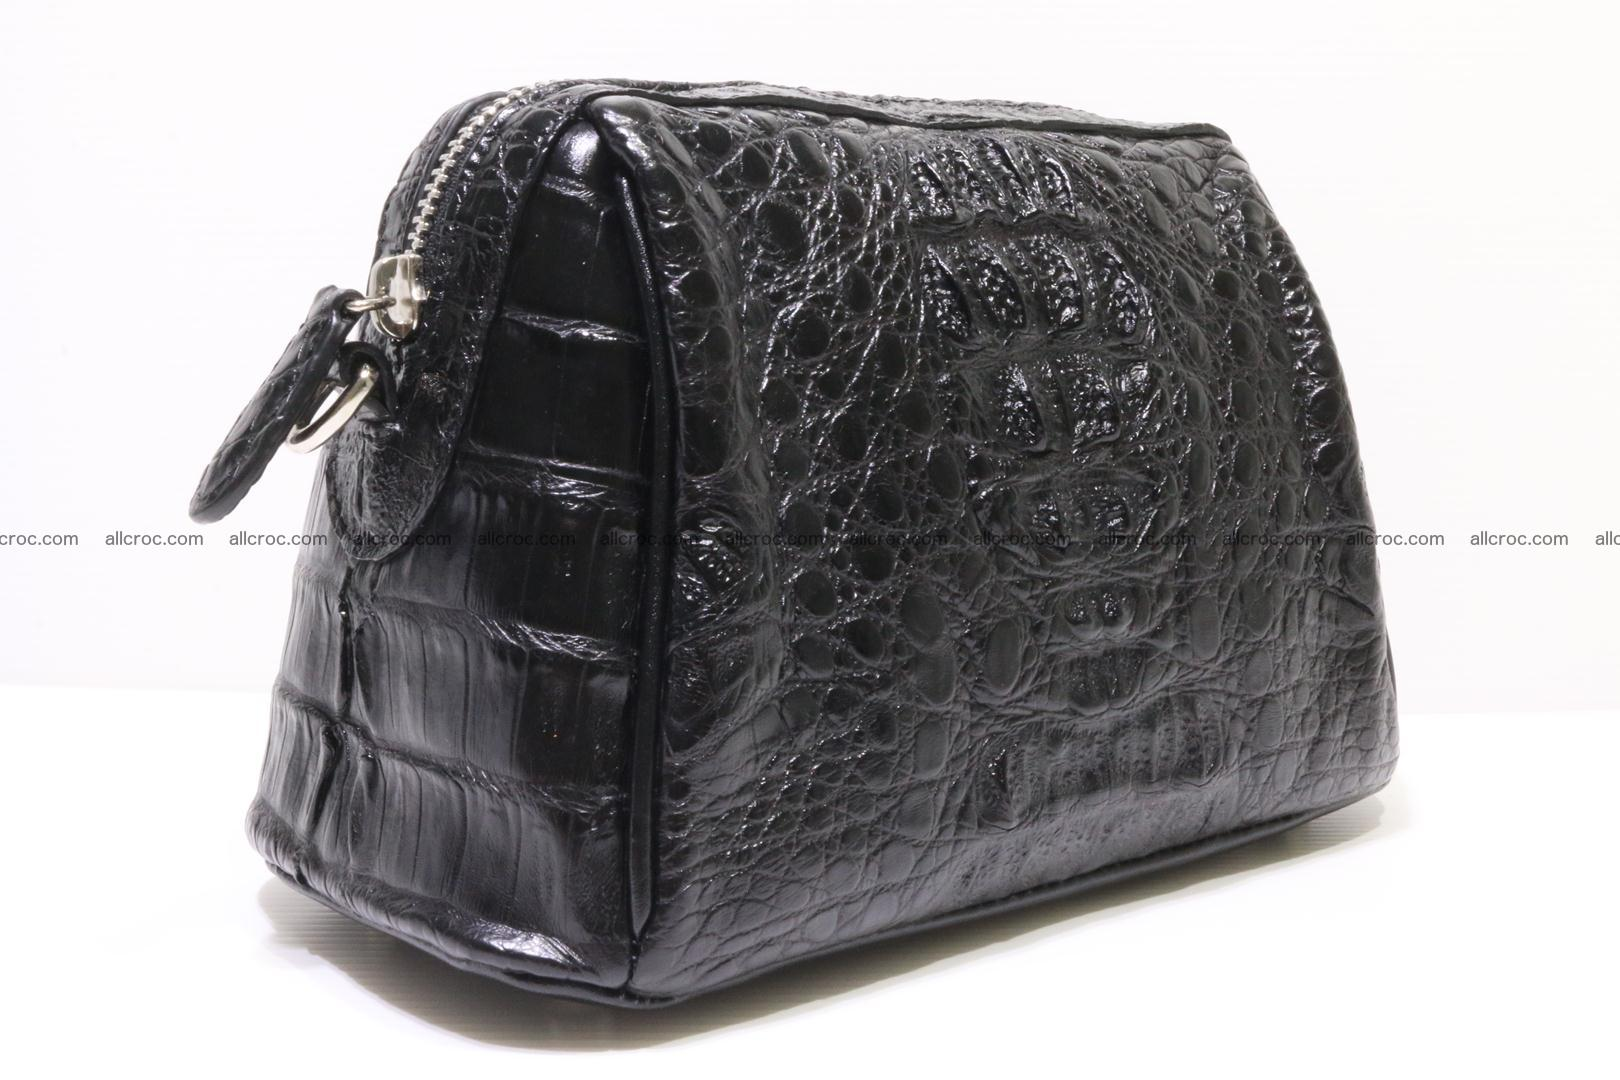 women's crocodile bag 042 Foto 6